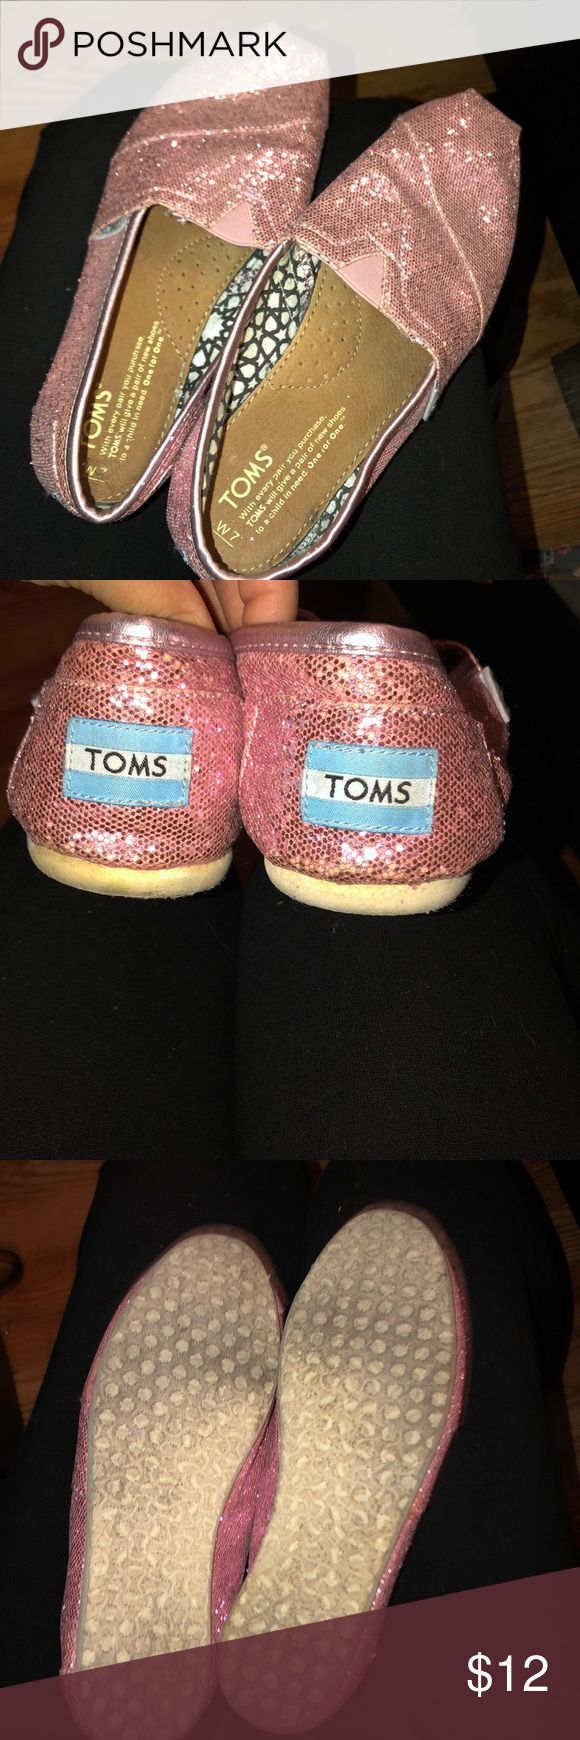 TOMS, Pink Glitter  (US SIZE W 7) Glittery pink TOMS. Supper cute and comfy. Toms Shoes Slippers